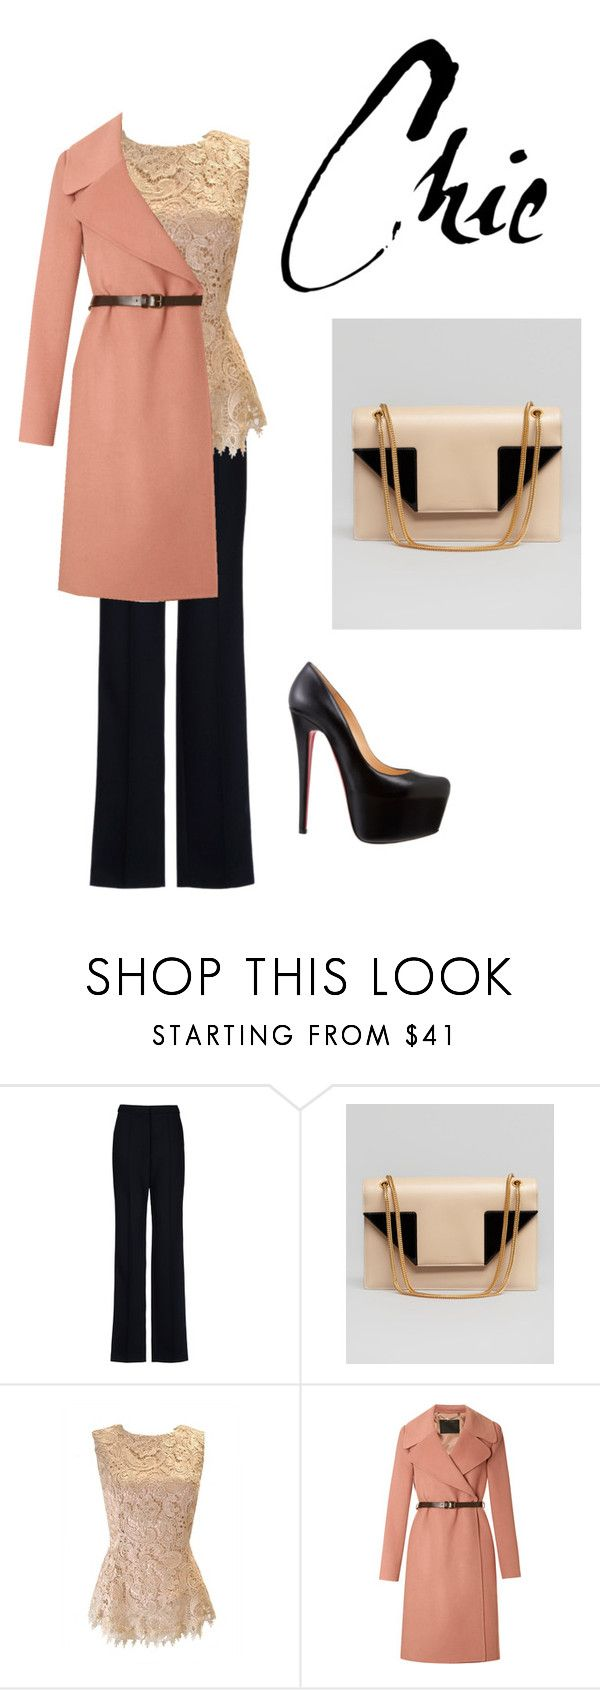 """""""Chic"""" by kellynatalia ❤ liked on Polyvore featuring STELLA McCARTNEY, Yves Saint Laurent, Marc Jacobs and Christian Louboutin"""